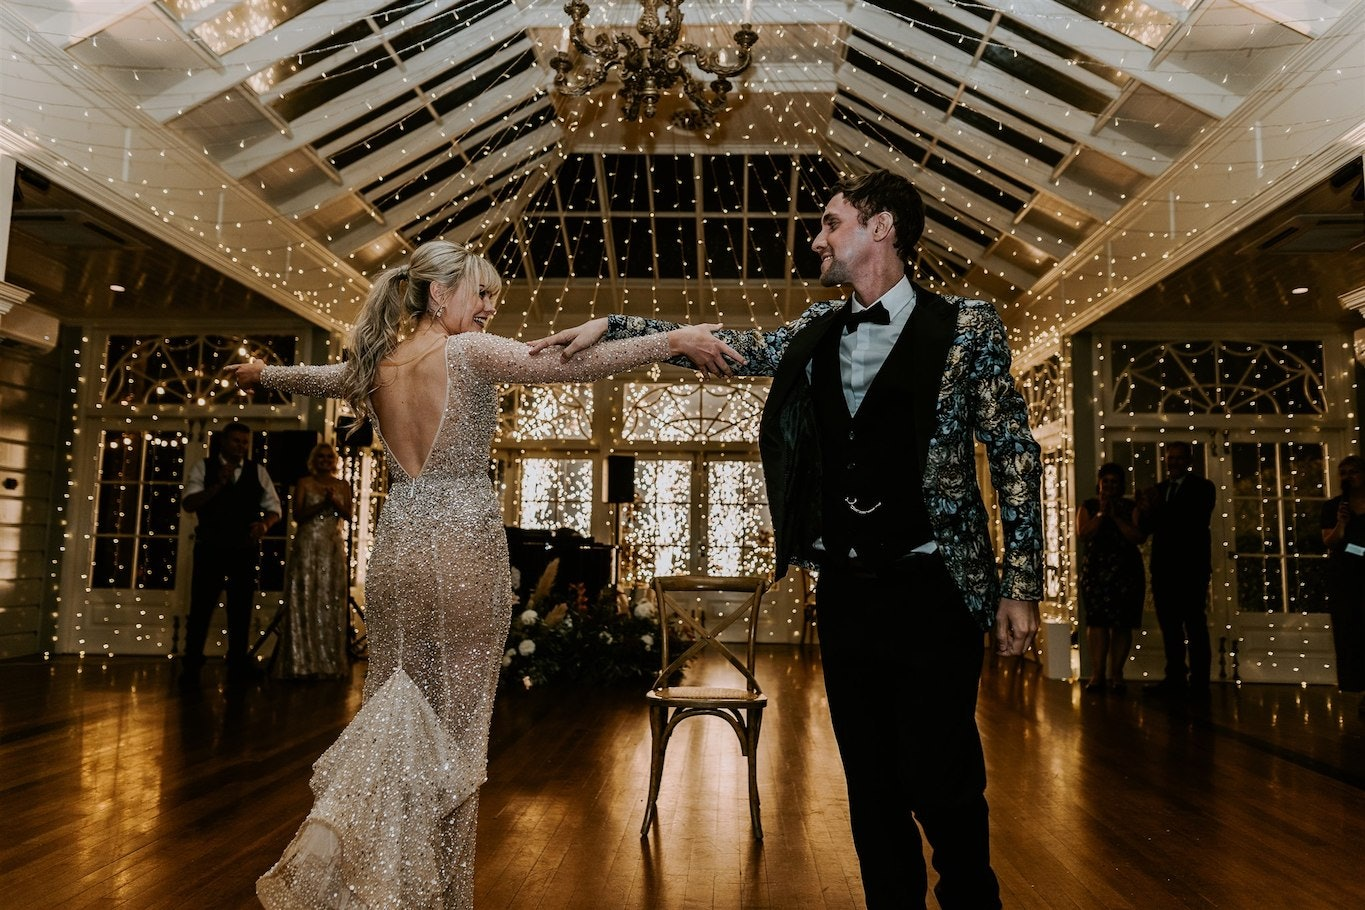 Bride and groom dancing in conservatory